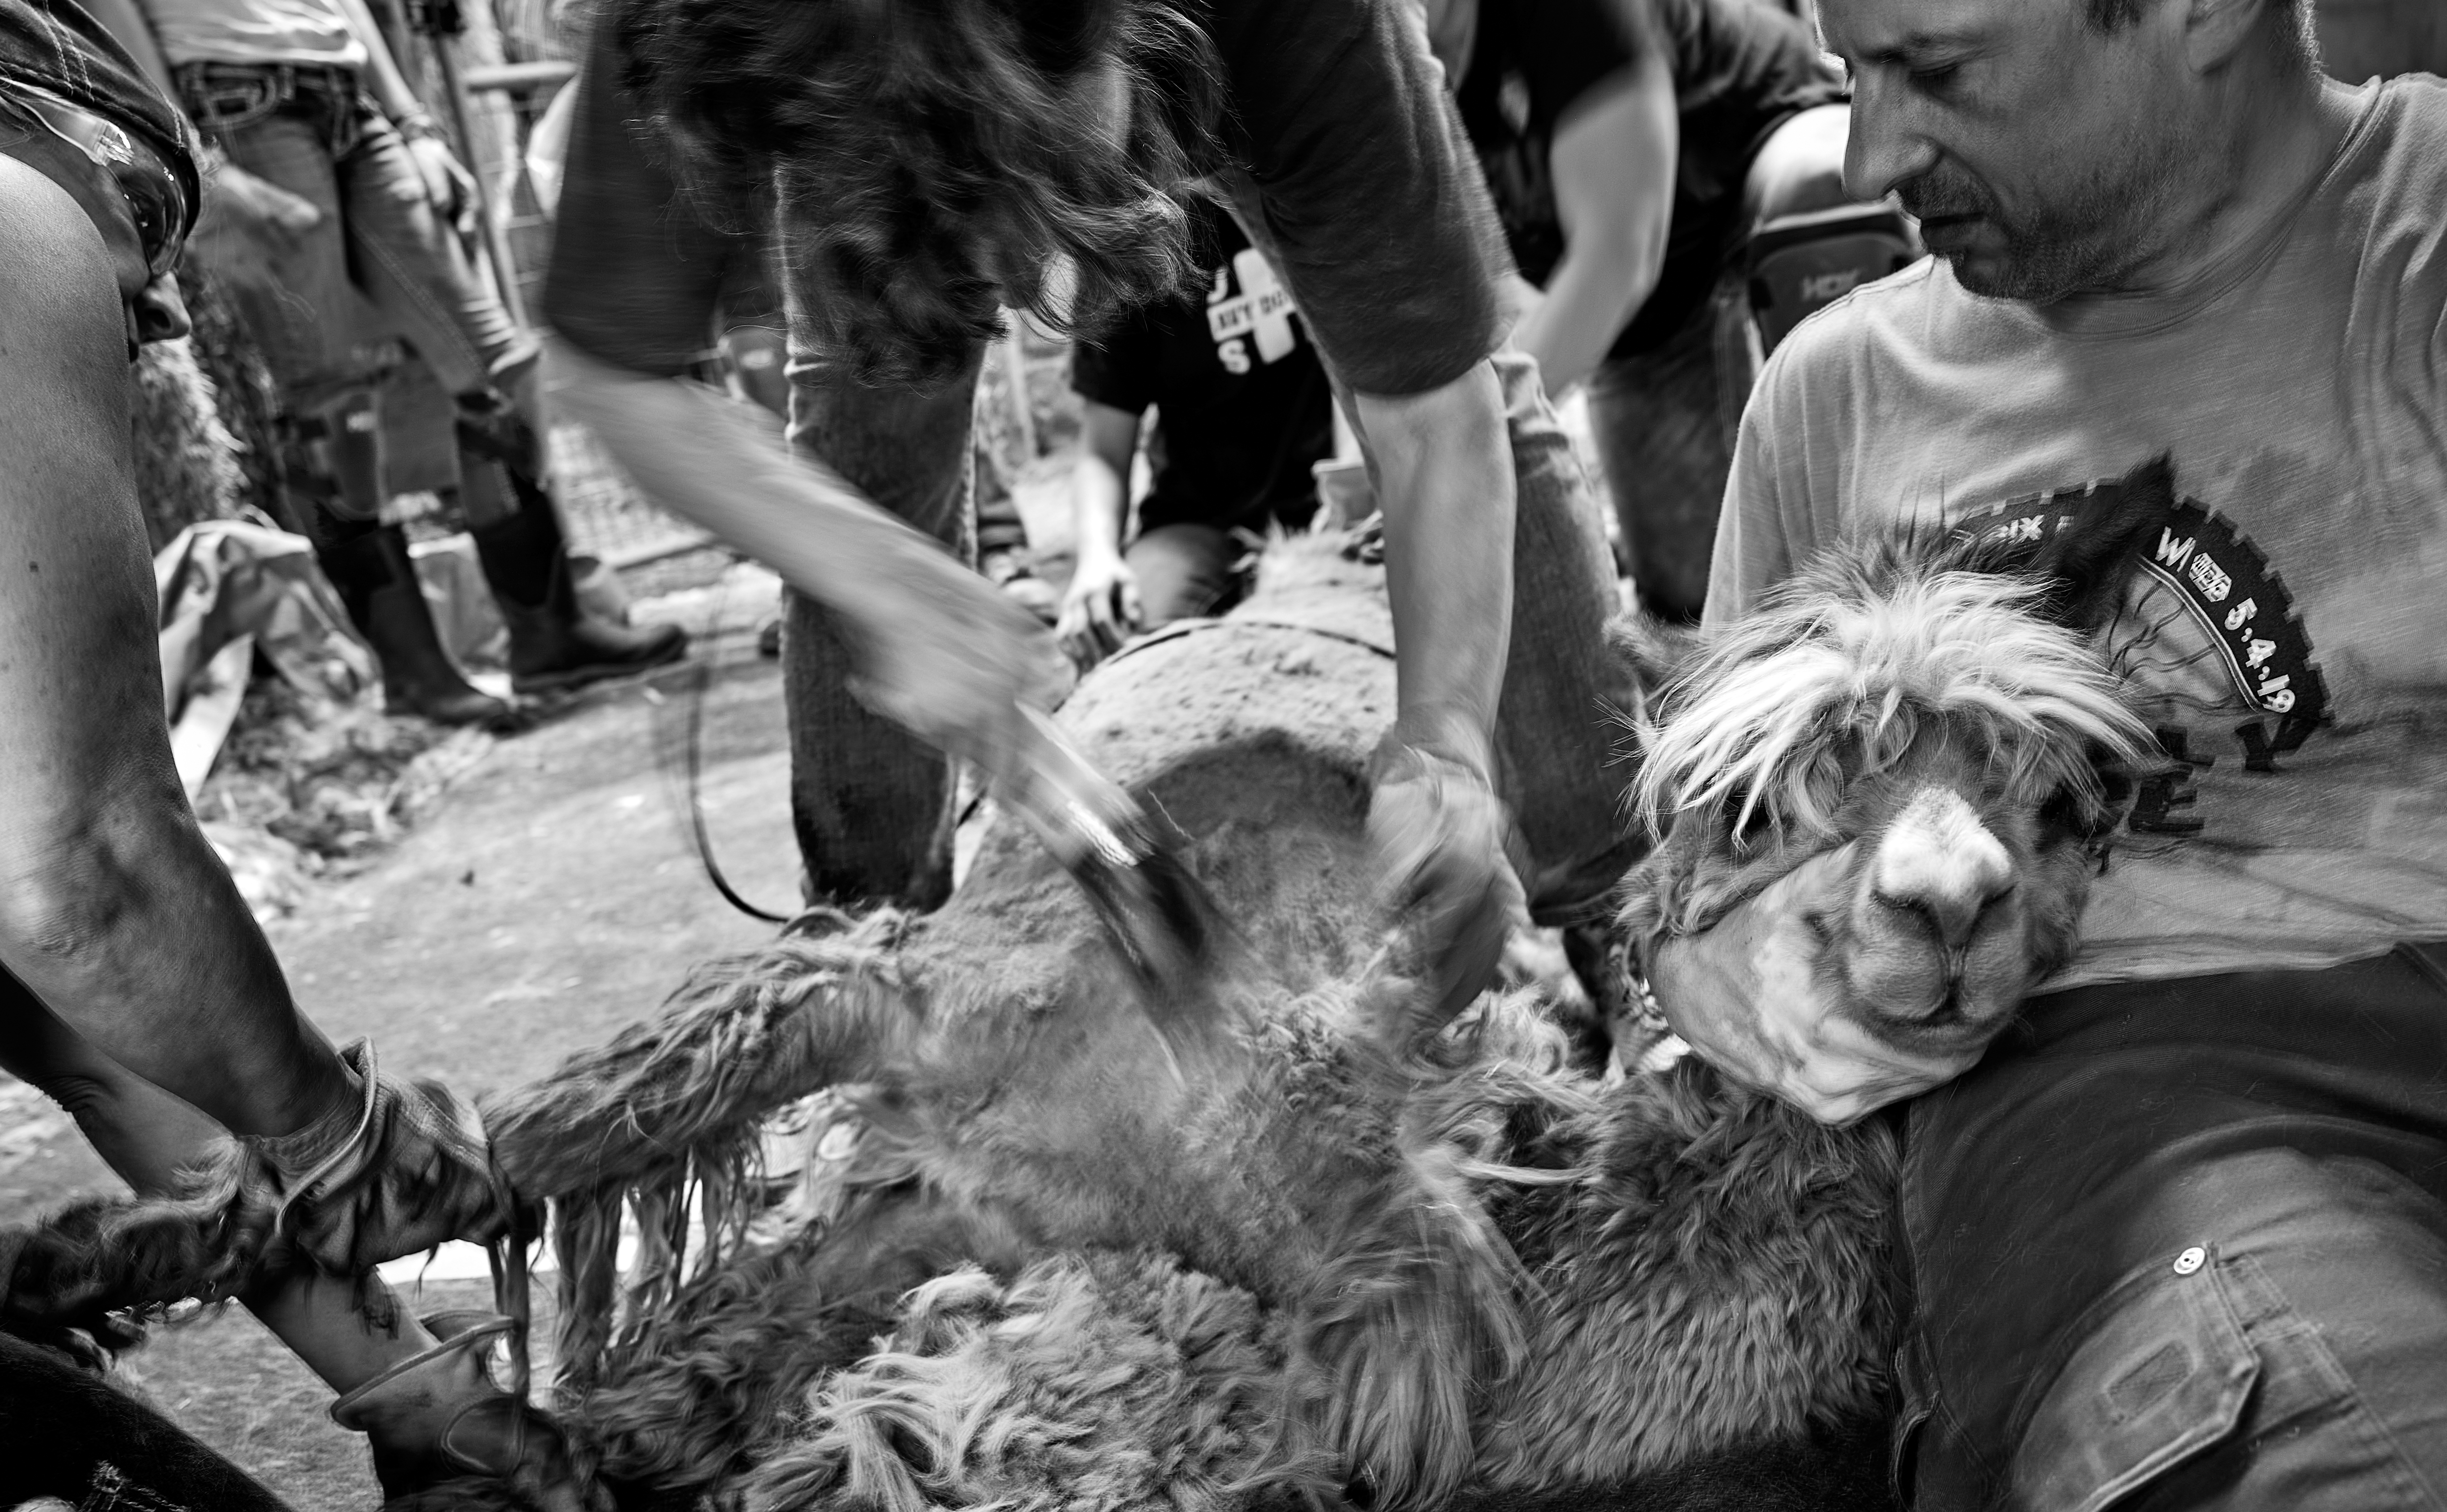 While it looks extreme, Wim gently rubs the alpaca into calmness.